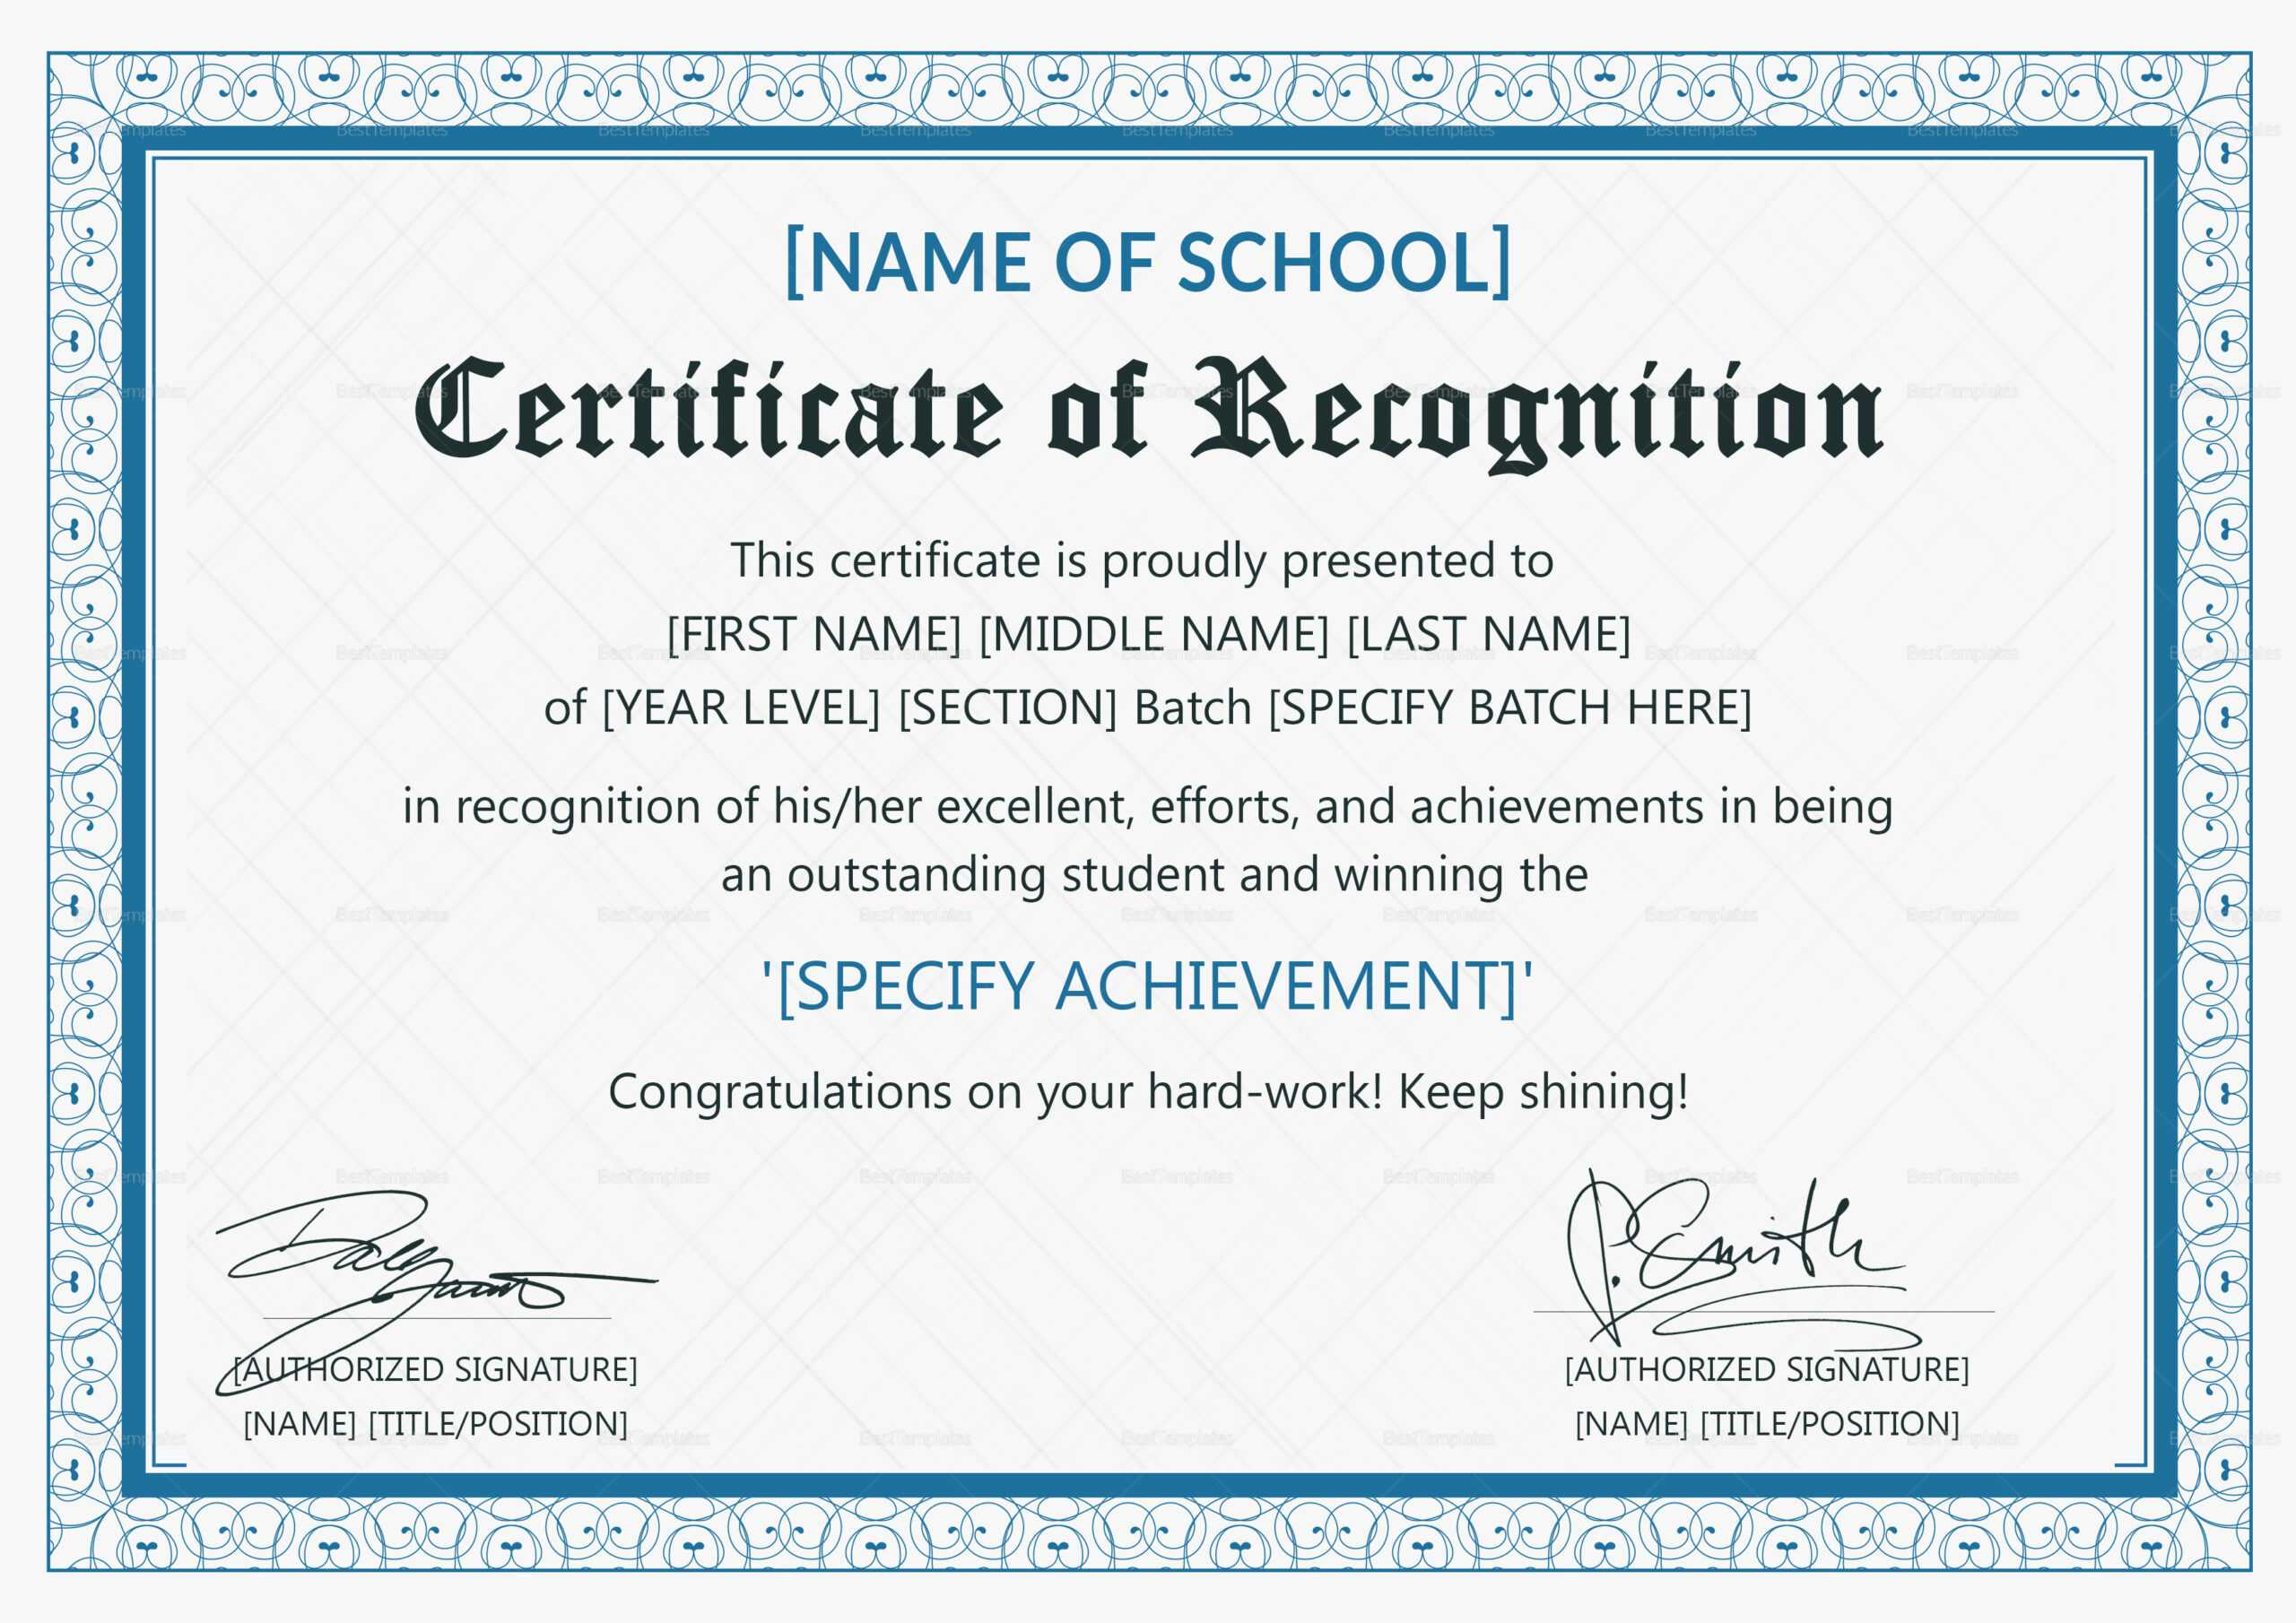 Certificate Of Recognition Template Letter Sample Award inside Sample Certificate Of Recognition Template